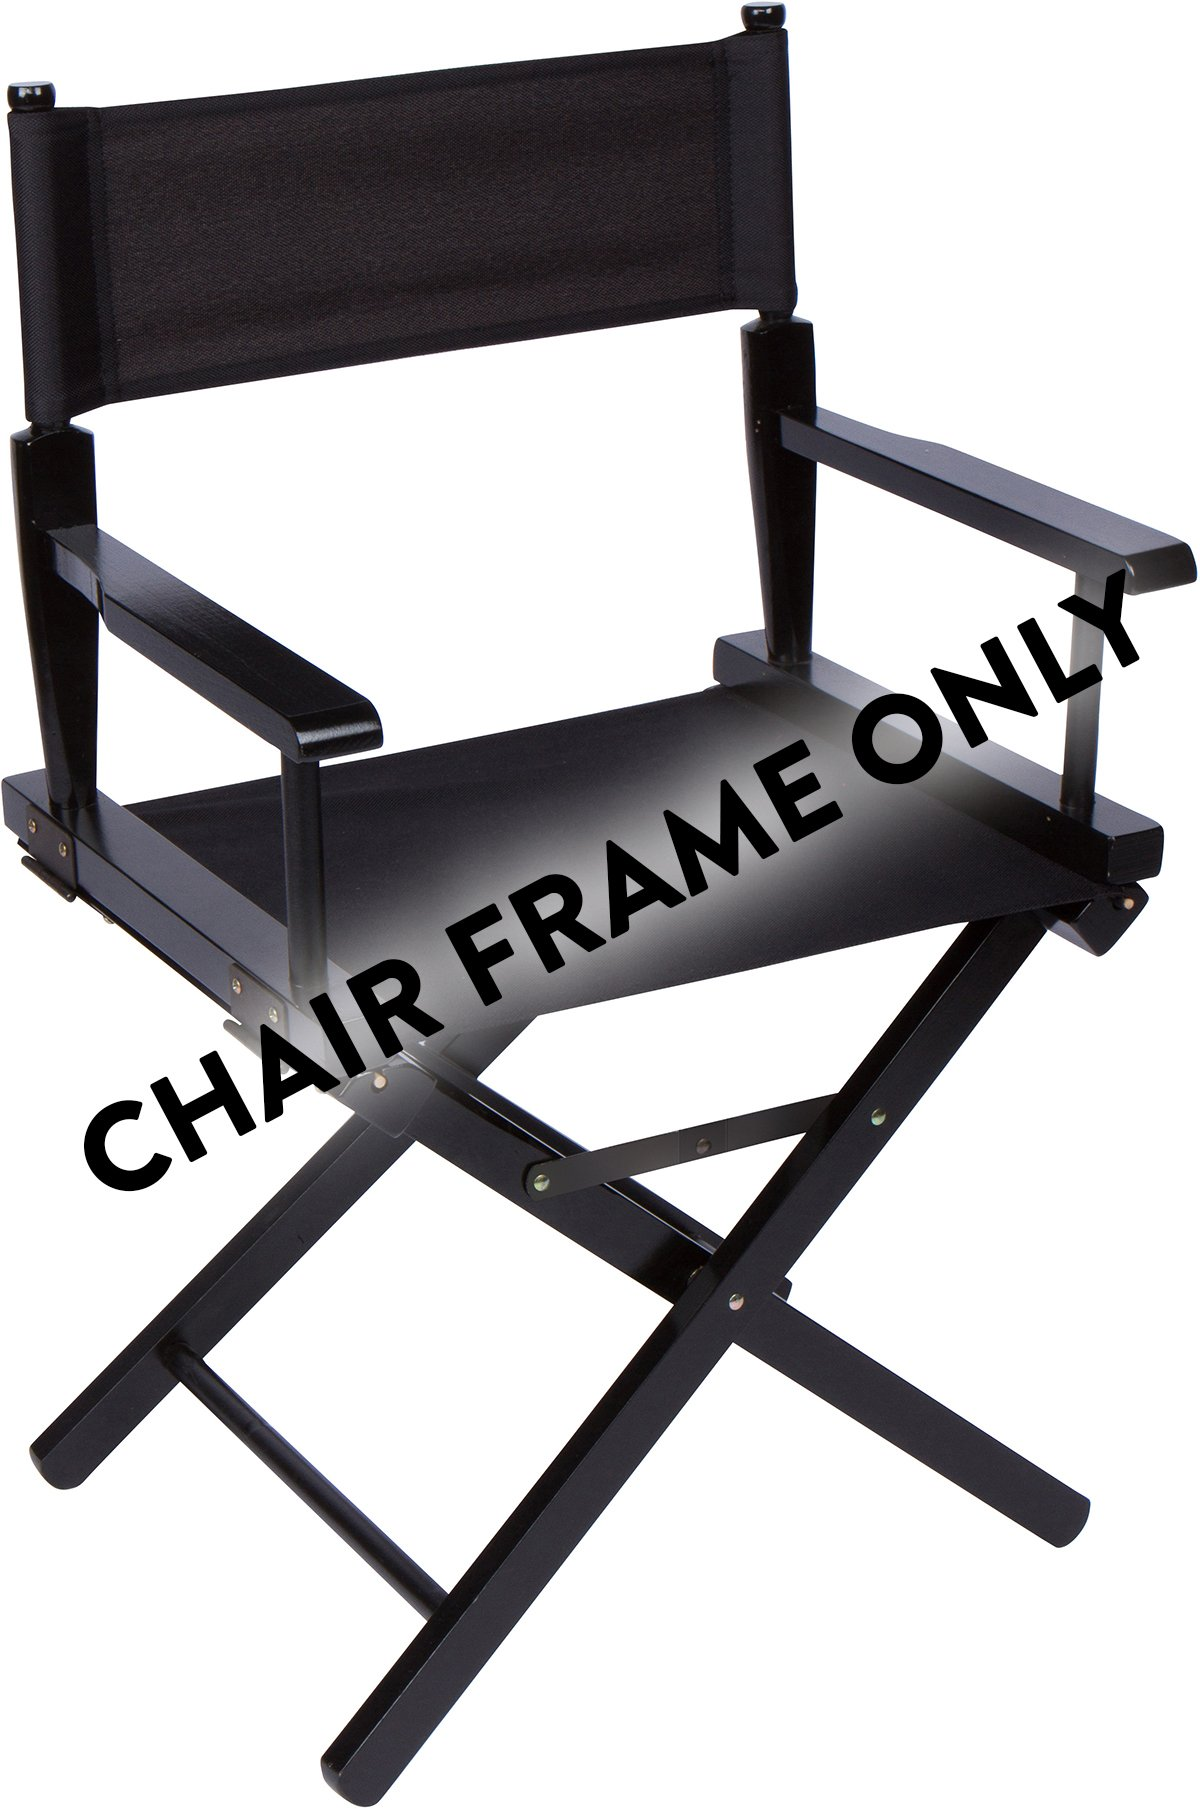 24'' Wood Frame Director Chair Body by Trademark Innovations (Black Wood)